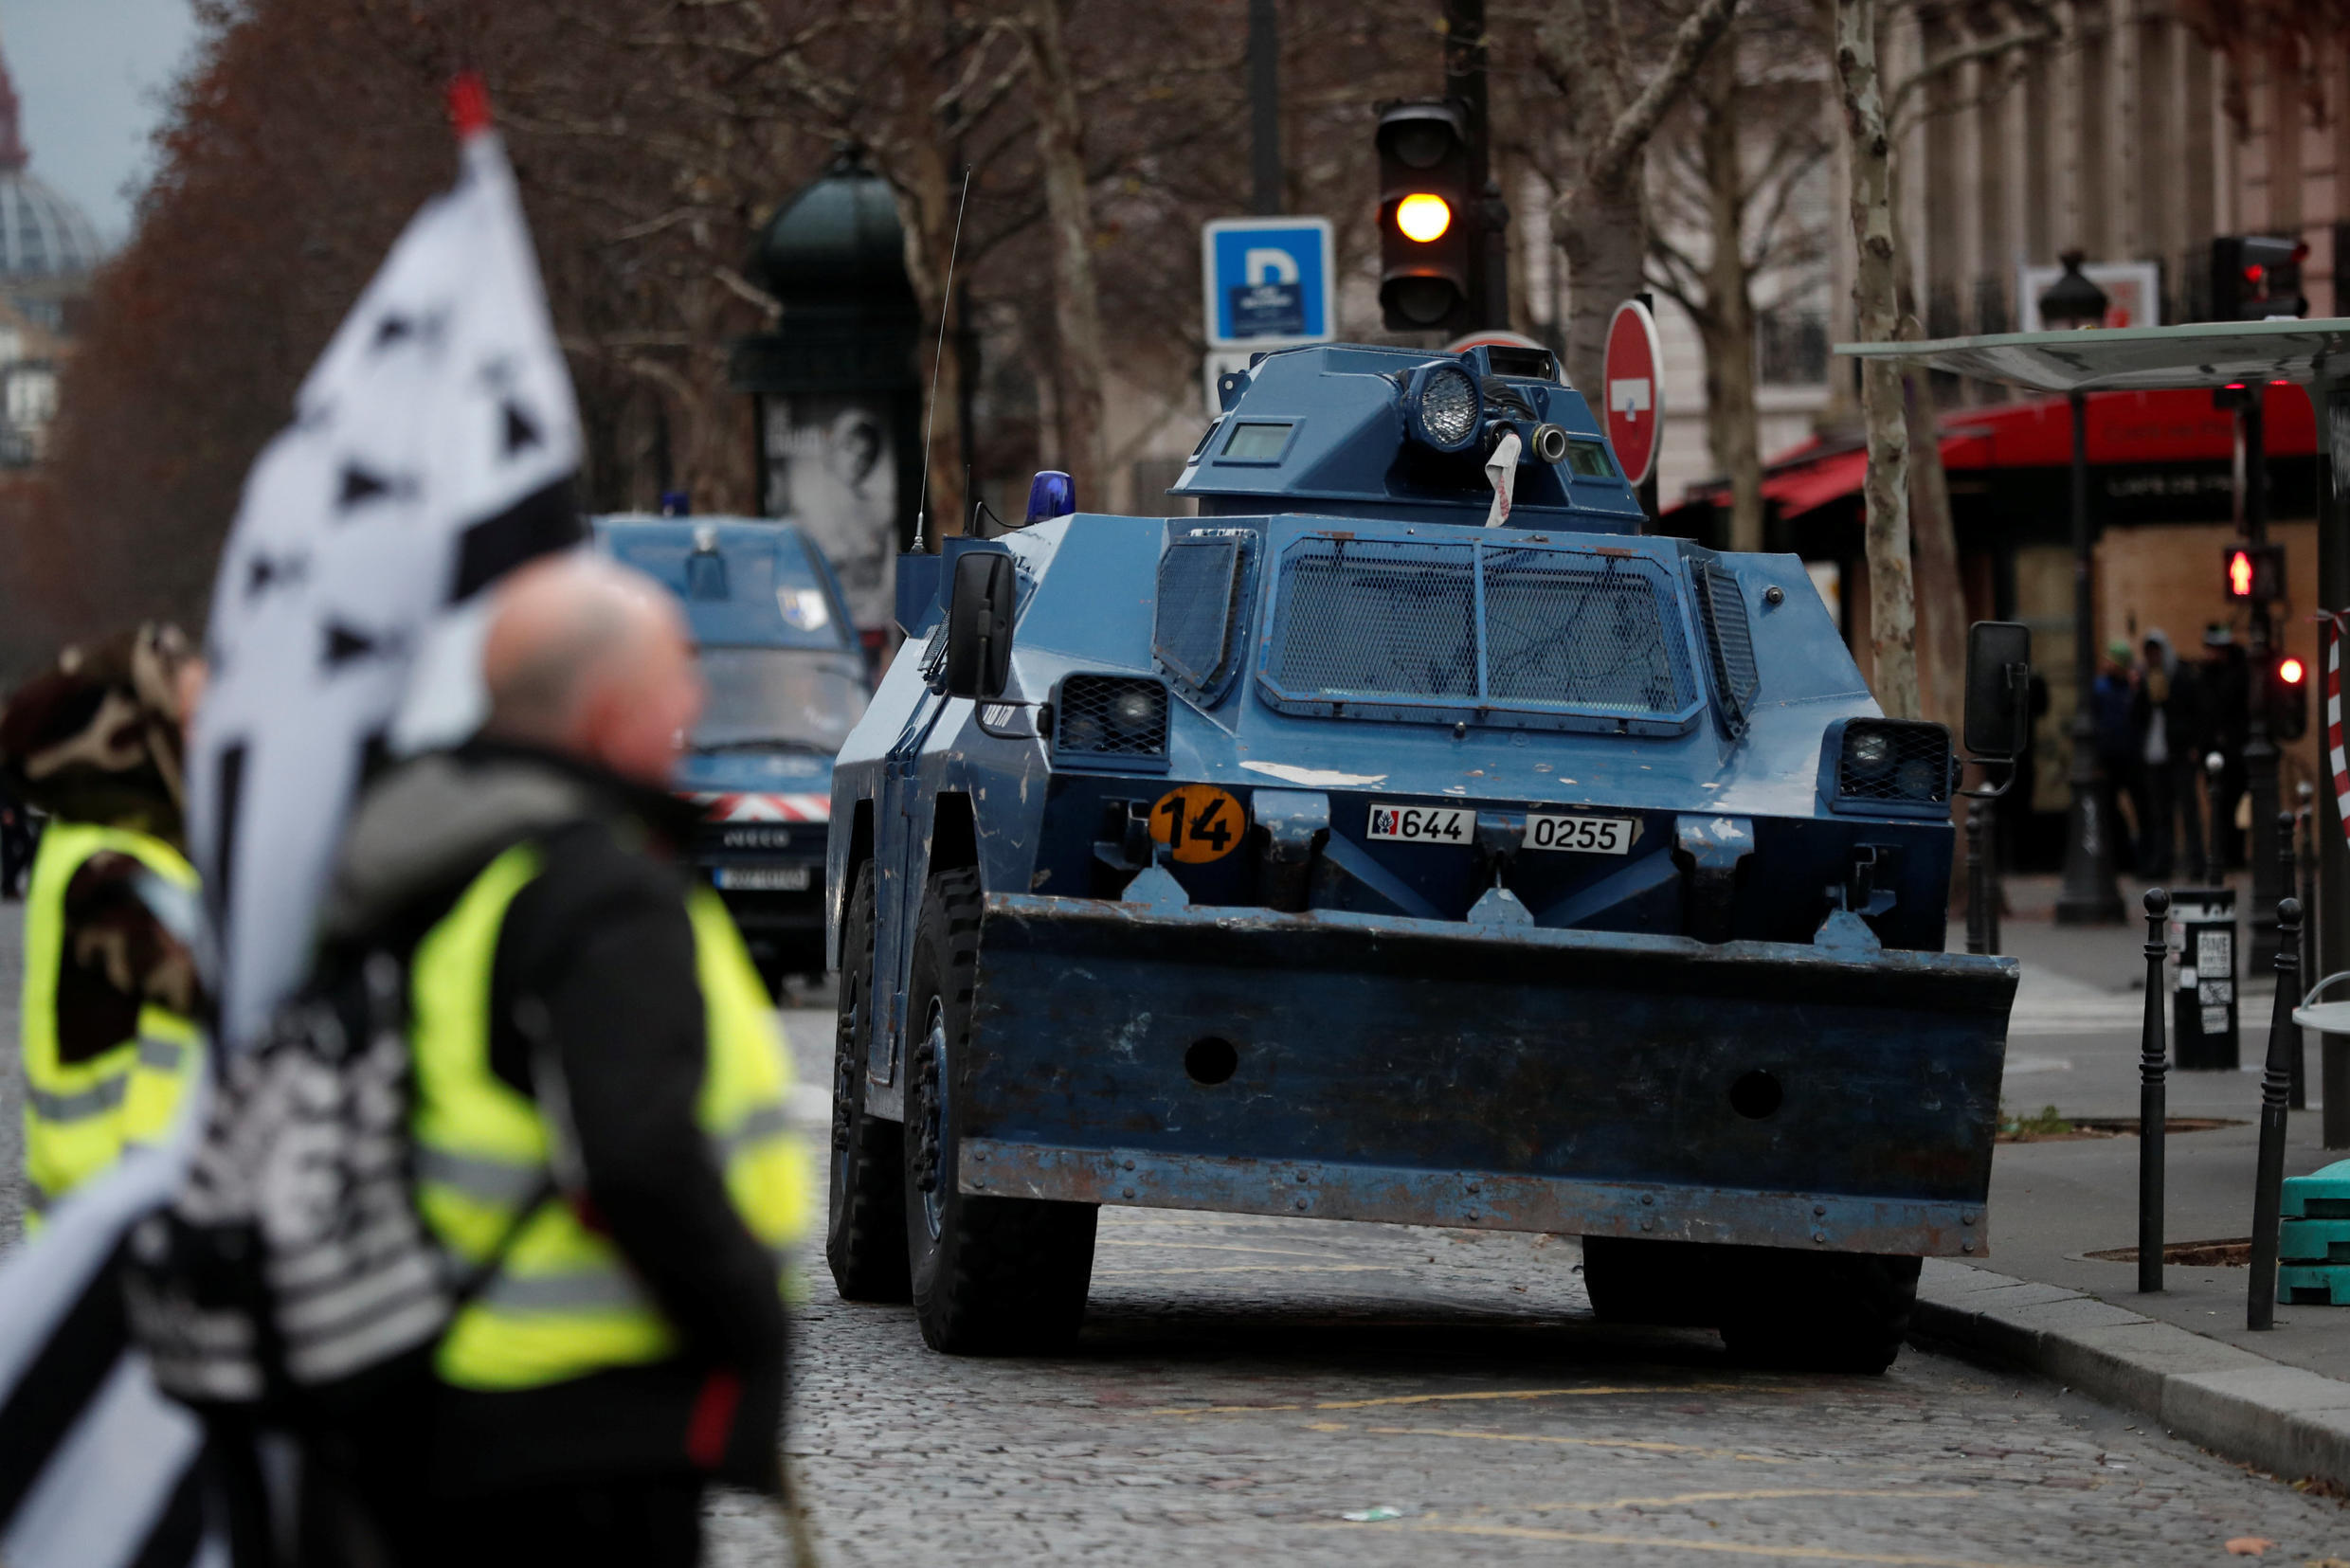 Armoured car on standby in Paris